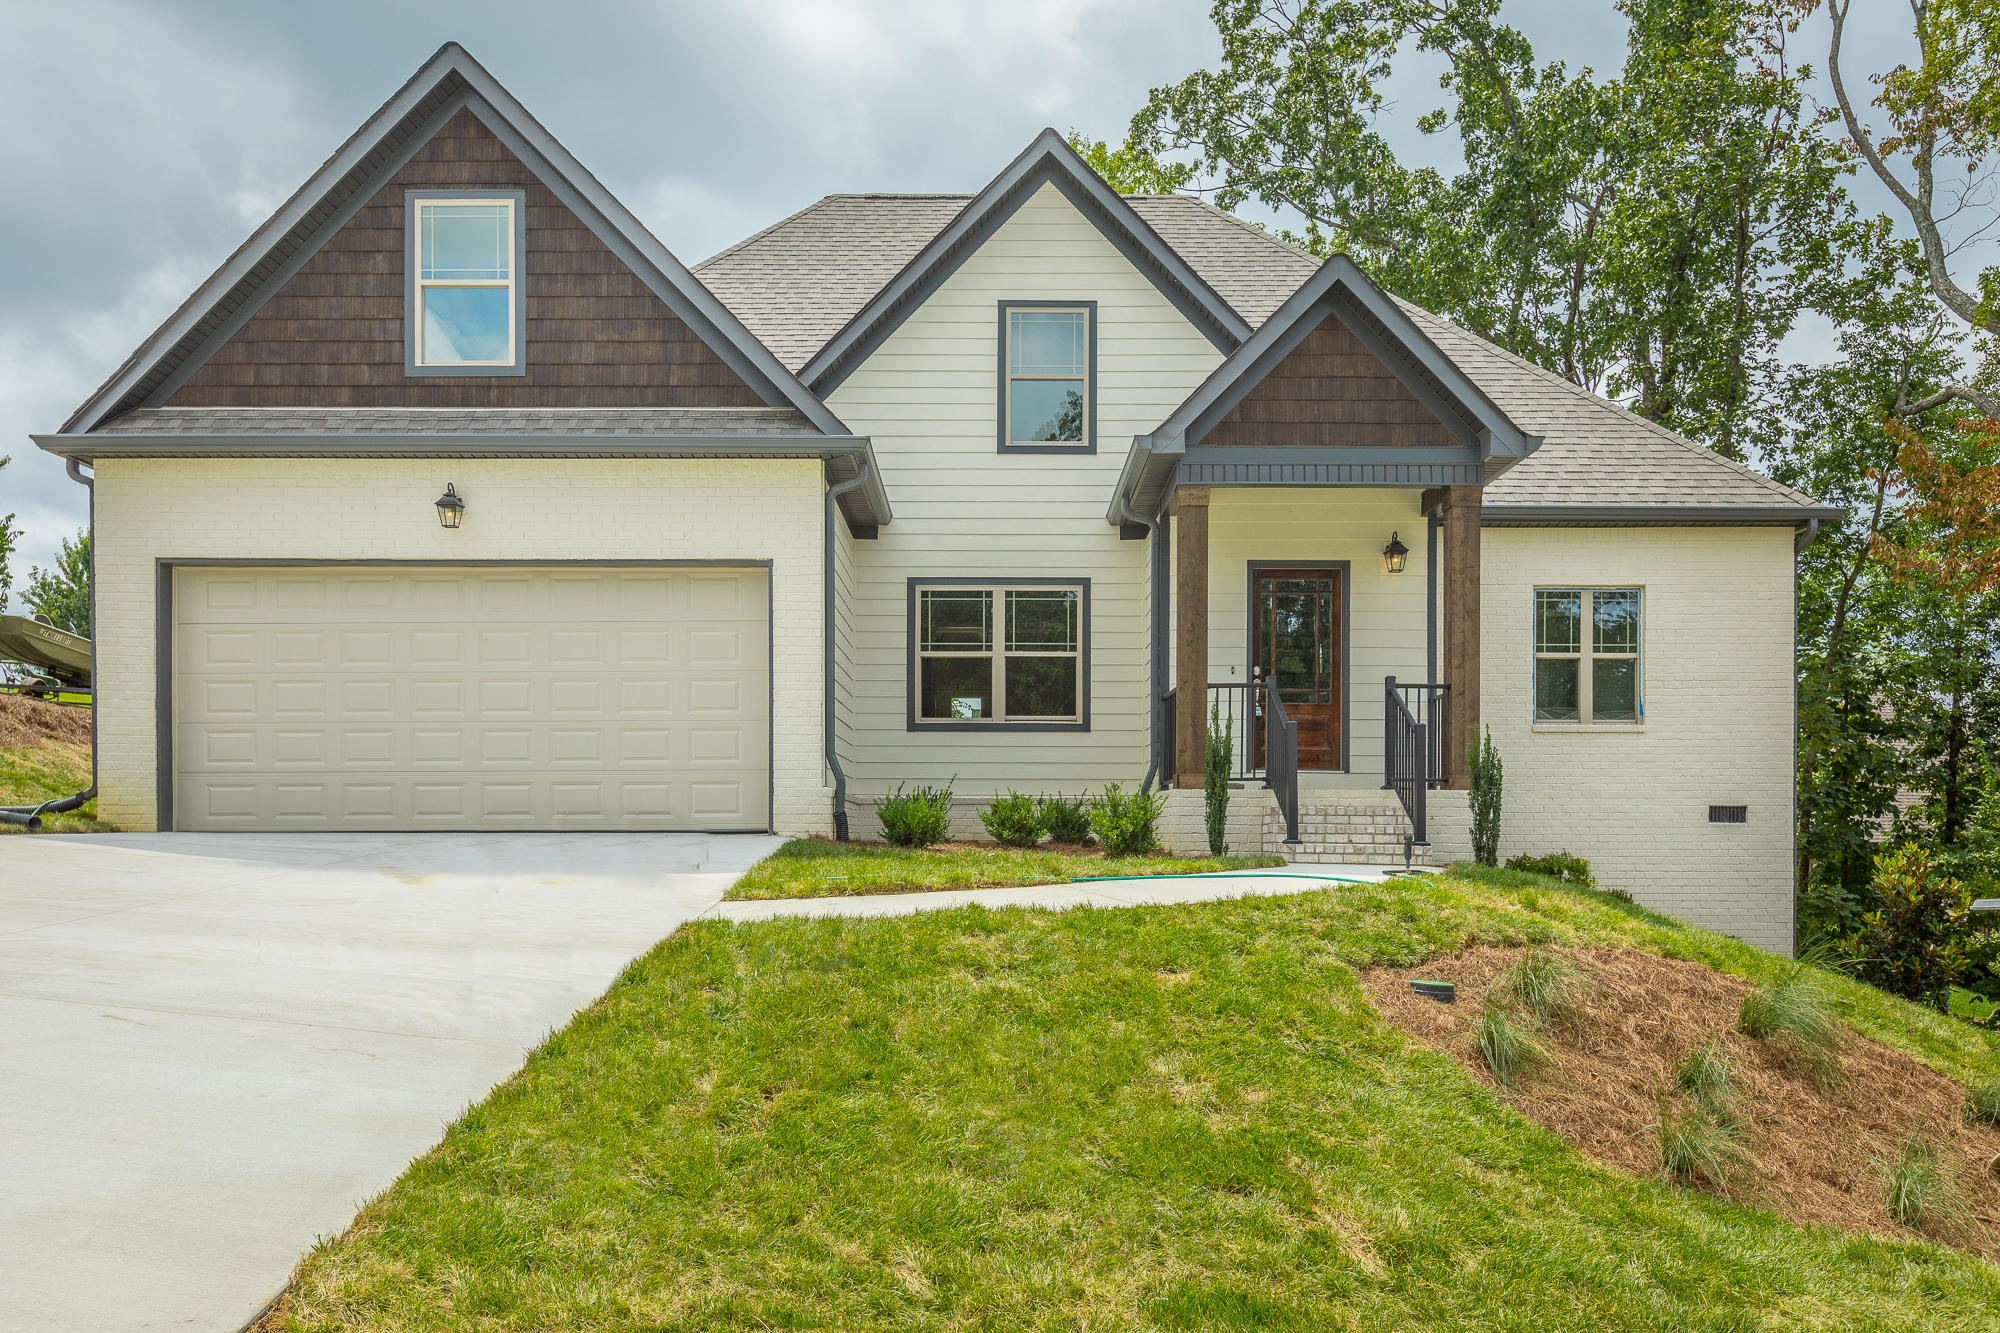 1791 Nw Overdale Drive Nw Dr, Cleveland, TN 37312